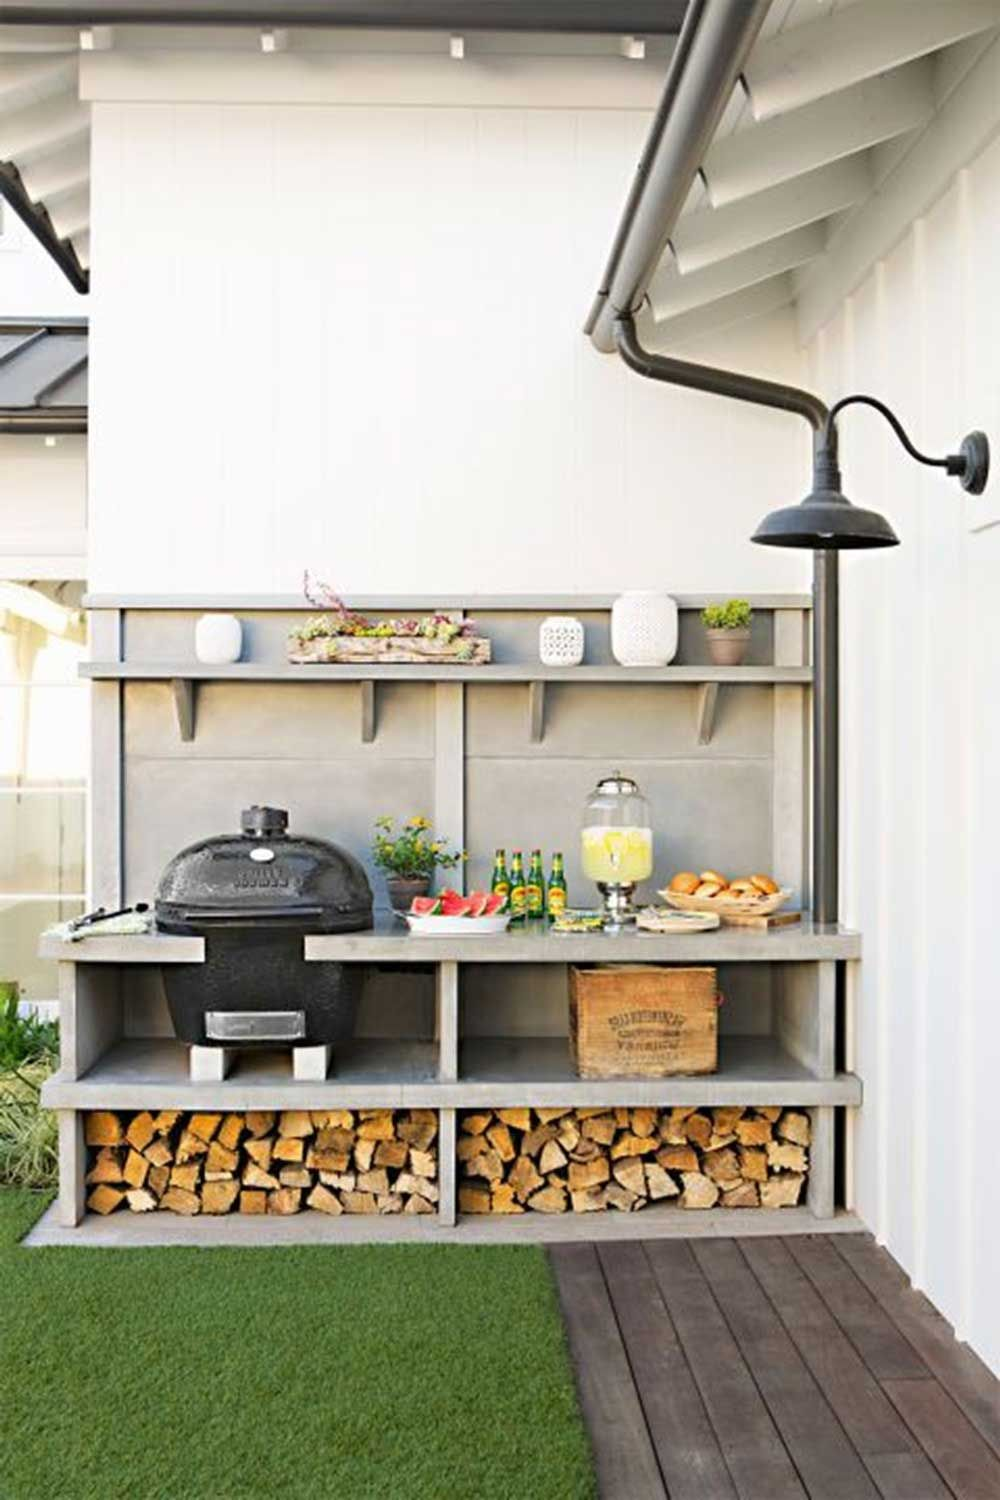 15 fantastic outdoor kitchens ideas on a budget outdoor kitchen kitchen remodel design on outdoor kitchen ideas on a budget id=51183